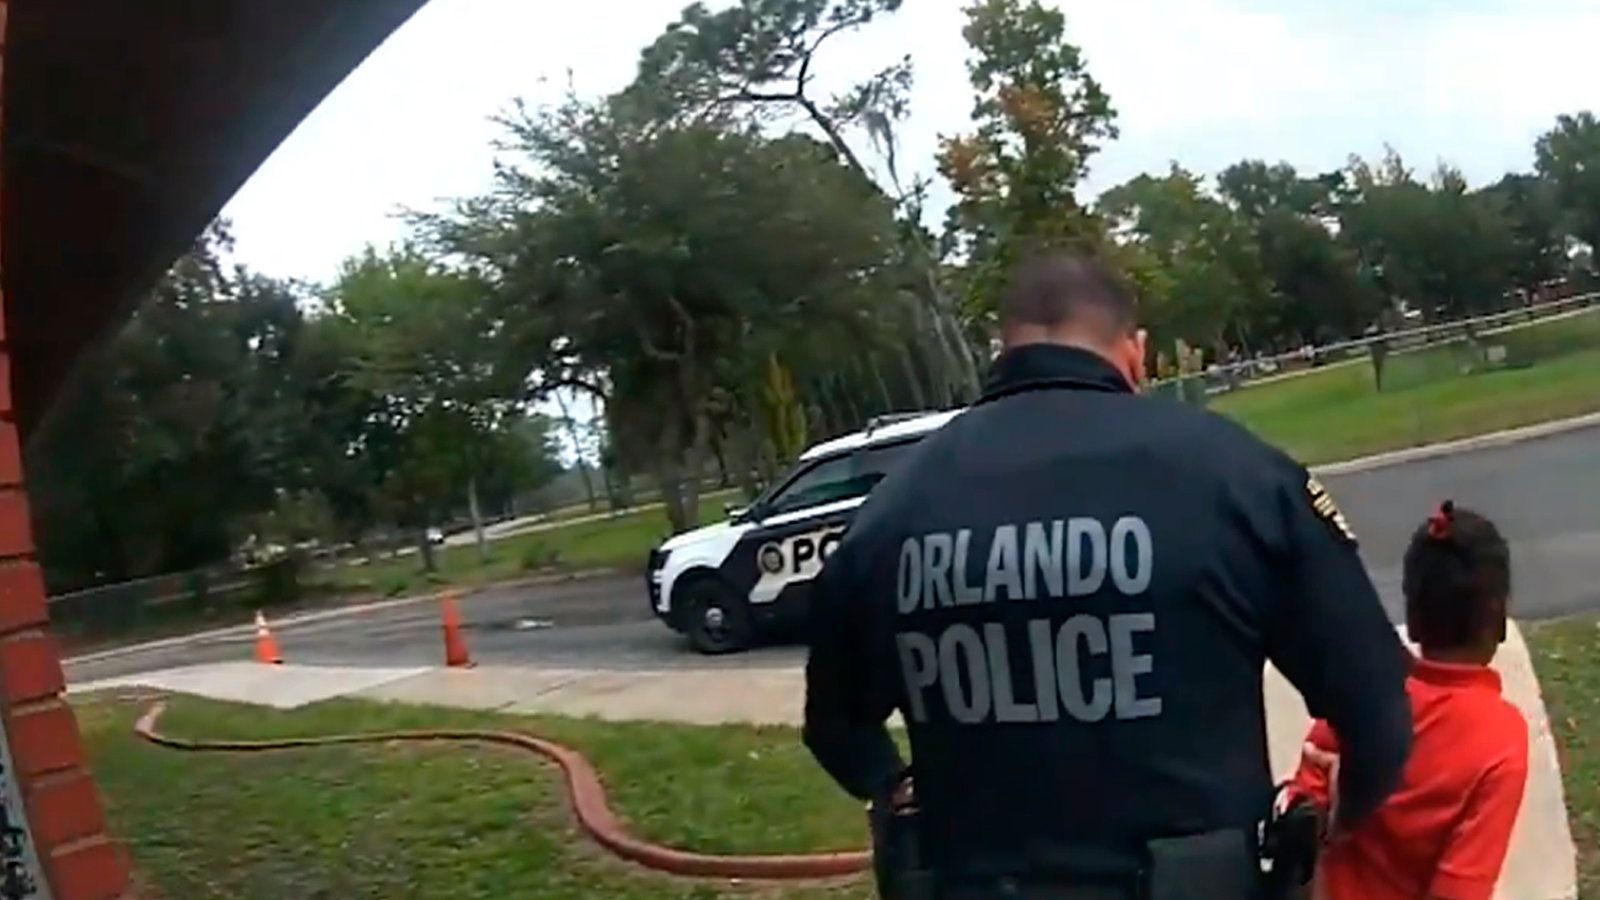 Body Camera Footage Shows Arrest by Orlando Police of 6